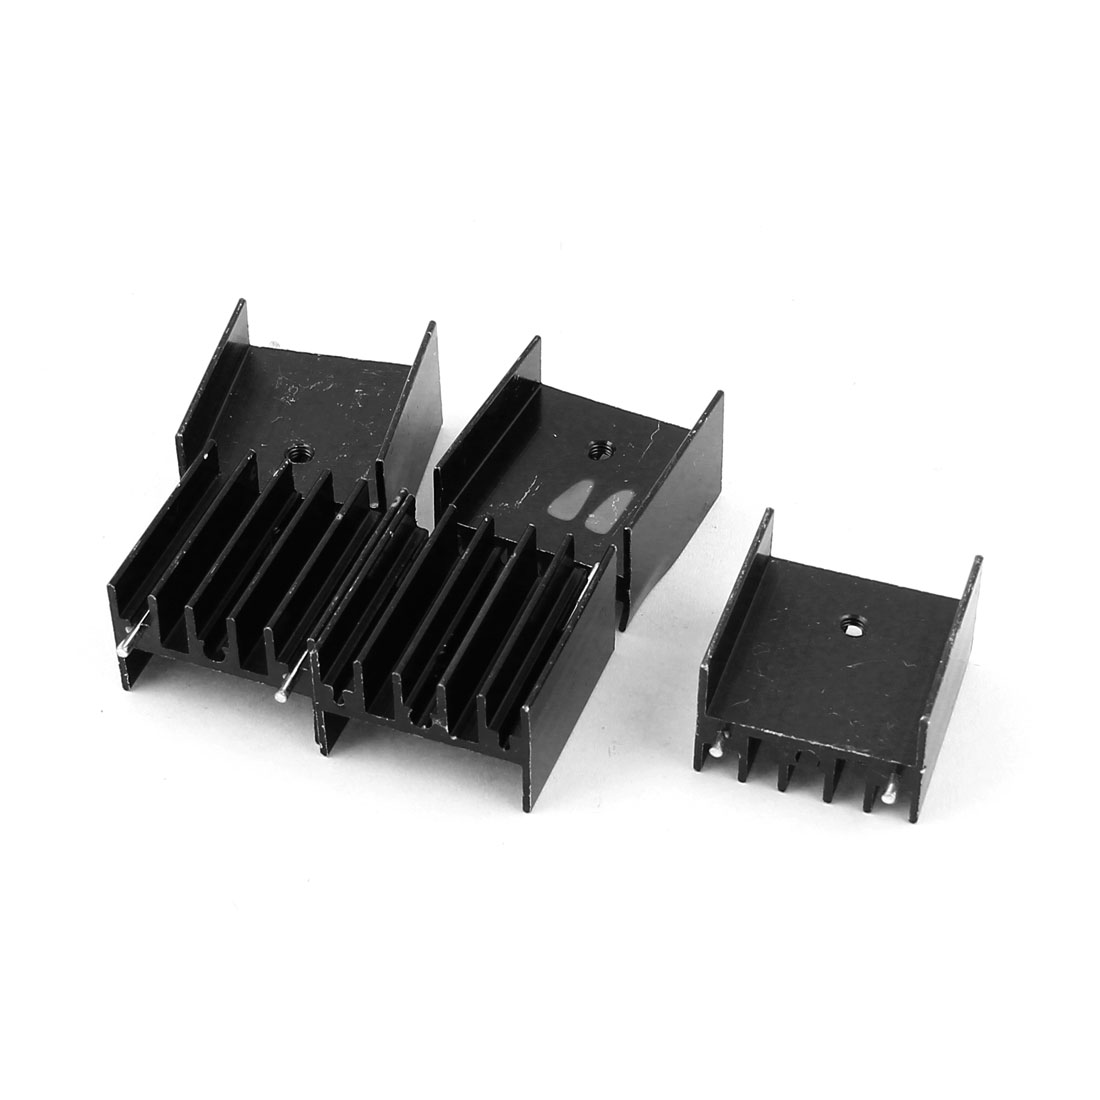 5 Pcs Black Aluminum Heat Sink 25x23x16mm for TO-220 Transistors